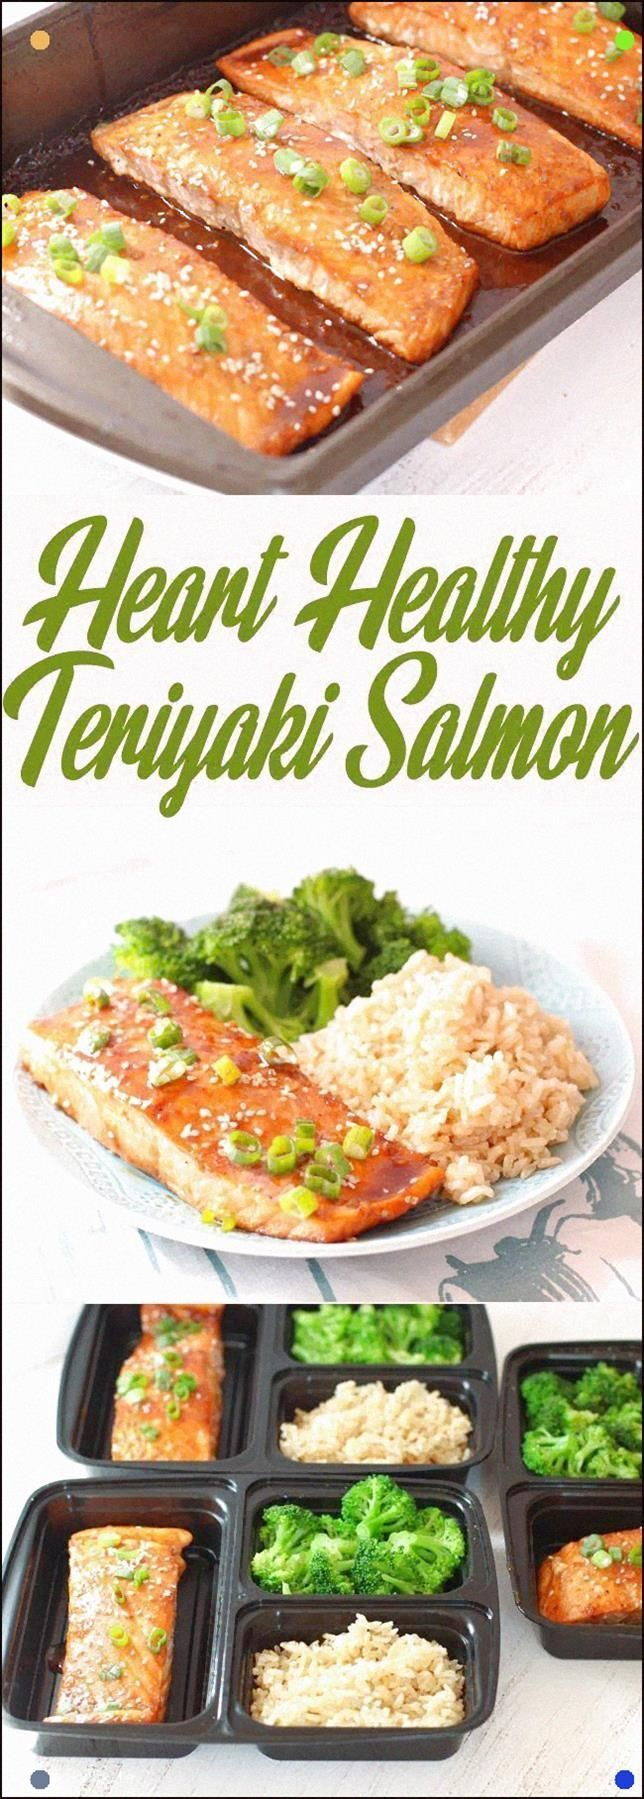 Heart Healthy Teriyaki Salmon - Made With Wild-Caught Salmon Oven-Baked With A Simple Teriyaki Glaze, And Served With Classic Brown Rice And Broccoli - A Tasty And Healthy Dinner The Family Will Love #Eatgoodfeelgood #Salmon #Healthy #Dinner #teriyakisalmon Heart Healthy Teriyaki Salmon - Made With Wild-Caught Salmon Oven-Baked With A Simple Teriyaki Glaze, And Served With Classic Brown Rice And Broccoli - A Tasty And Healthy Dinner The Family Will Love #Eatgoodfeelgood #Salmon #Healthy #Dinner #teriyakisalmon